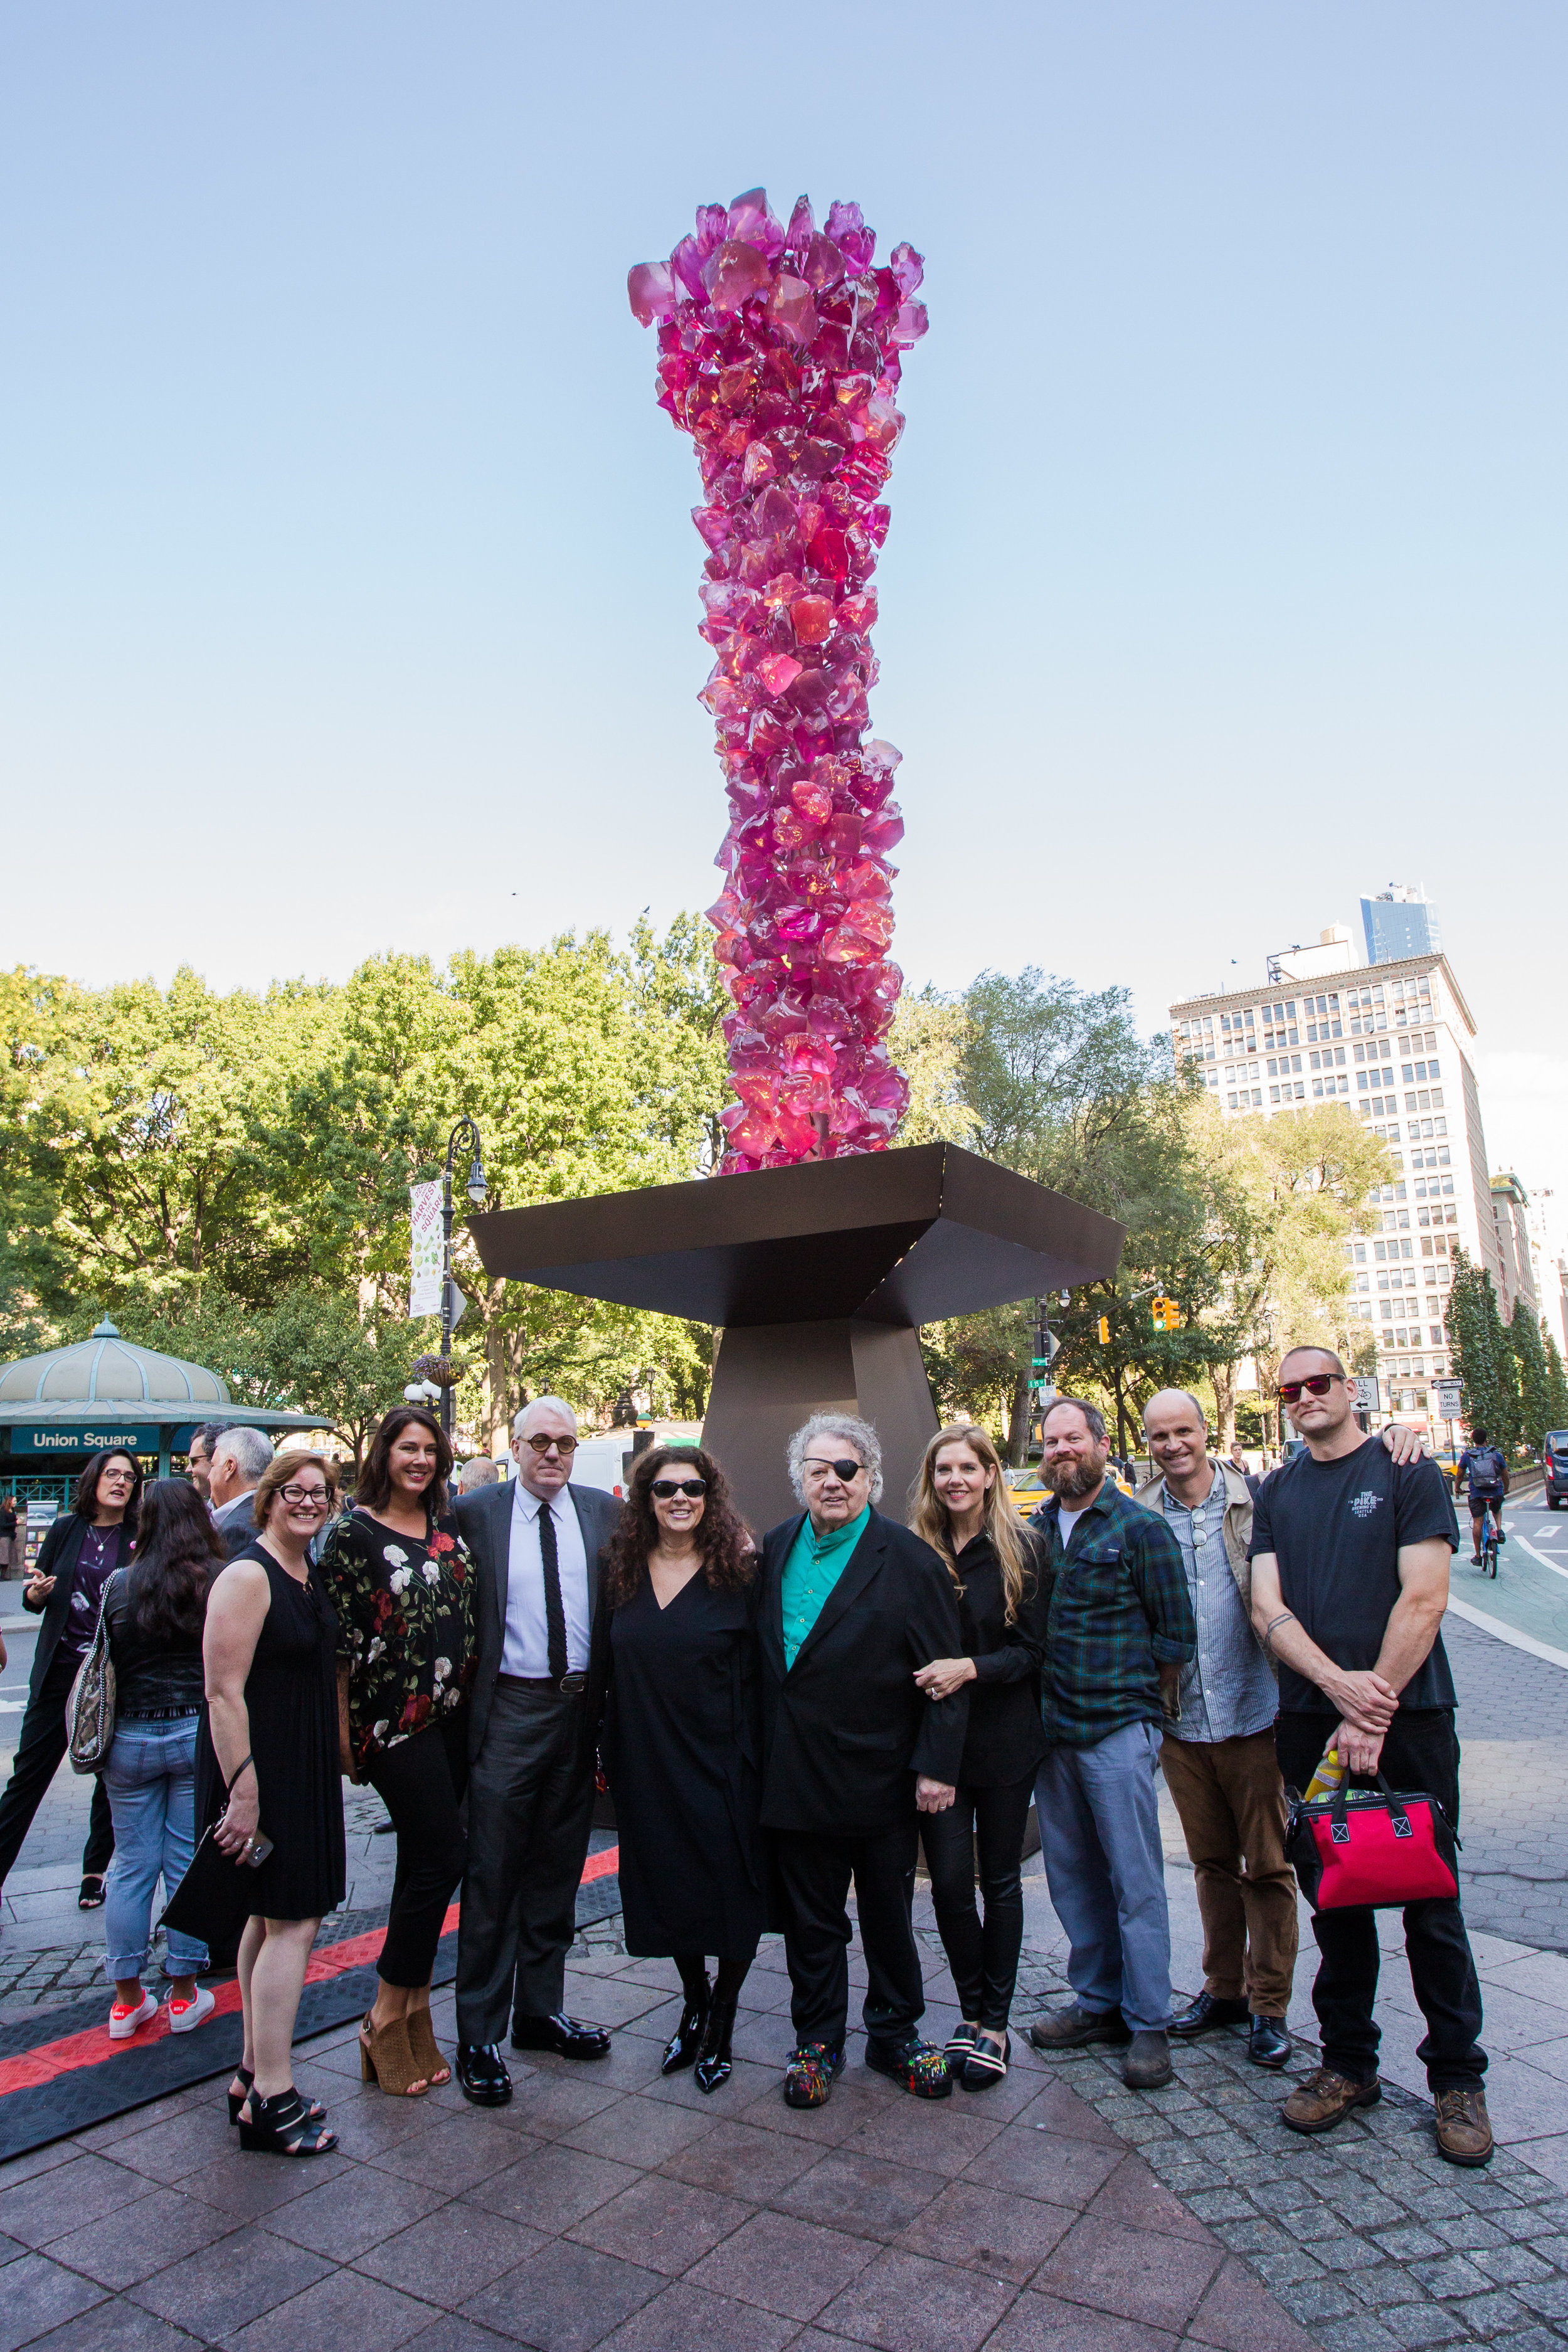 Chihuly Studio team in New York for the Rose Crystal Tower debut in Union Square.